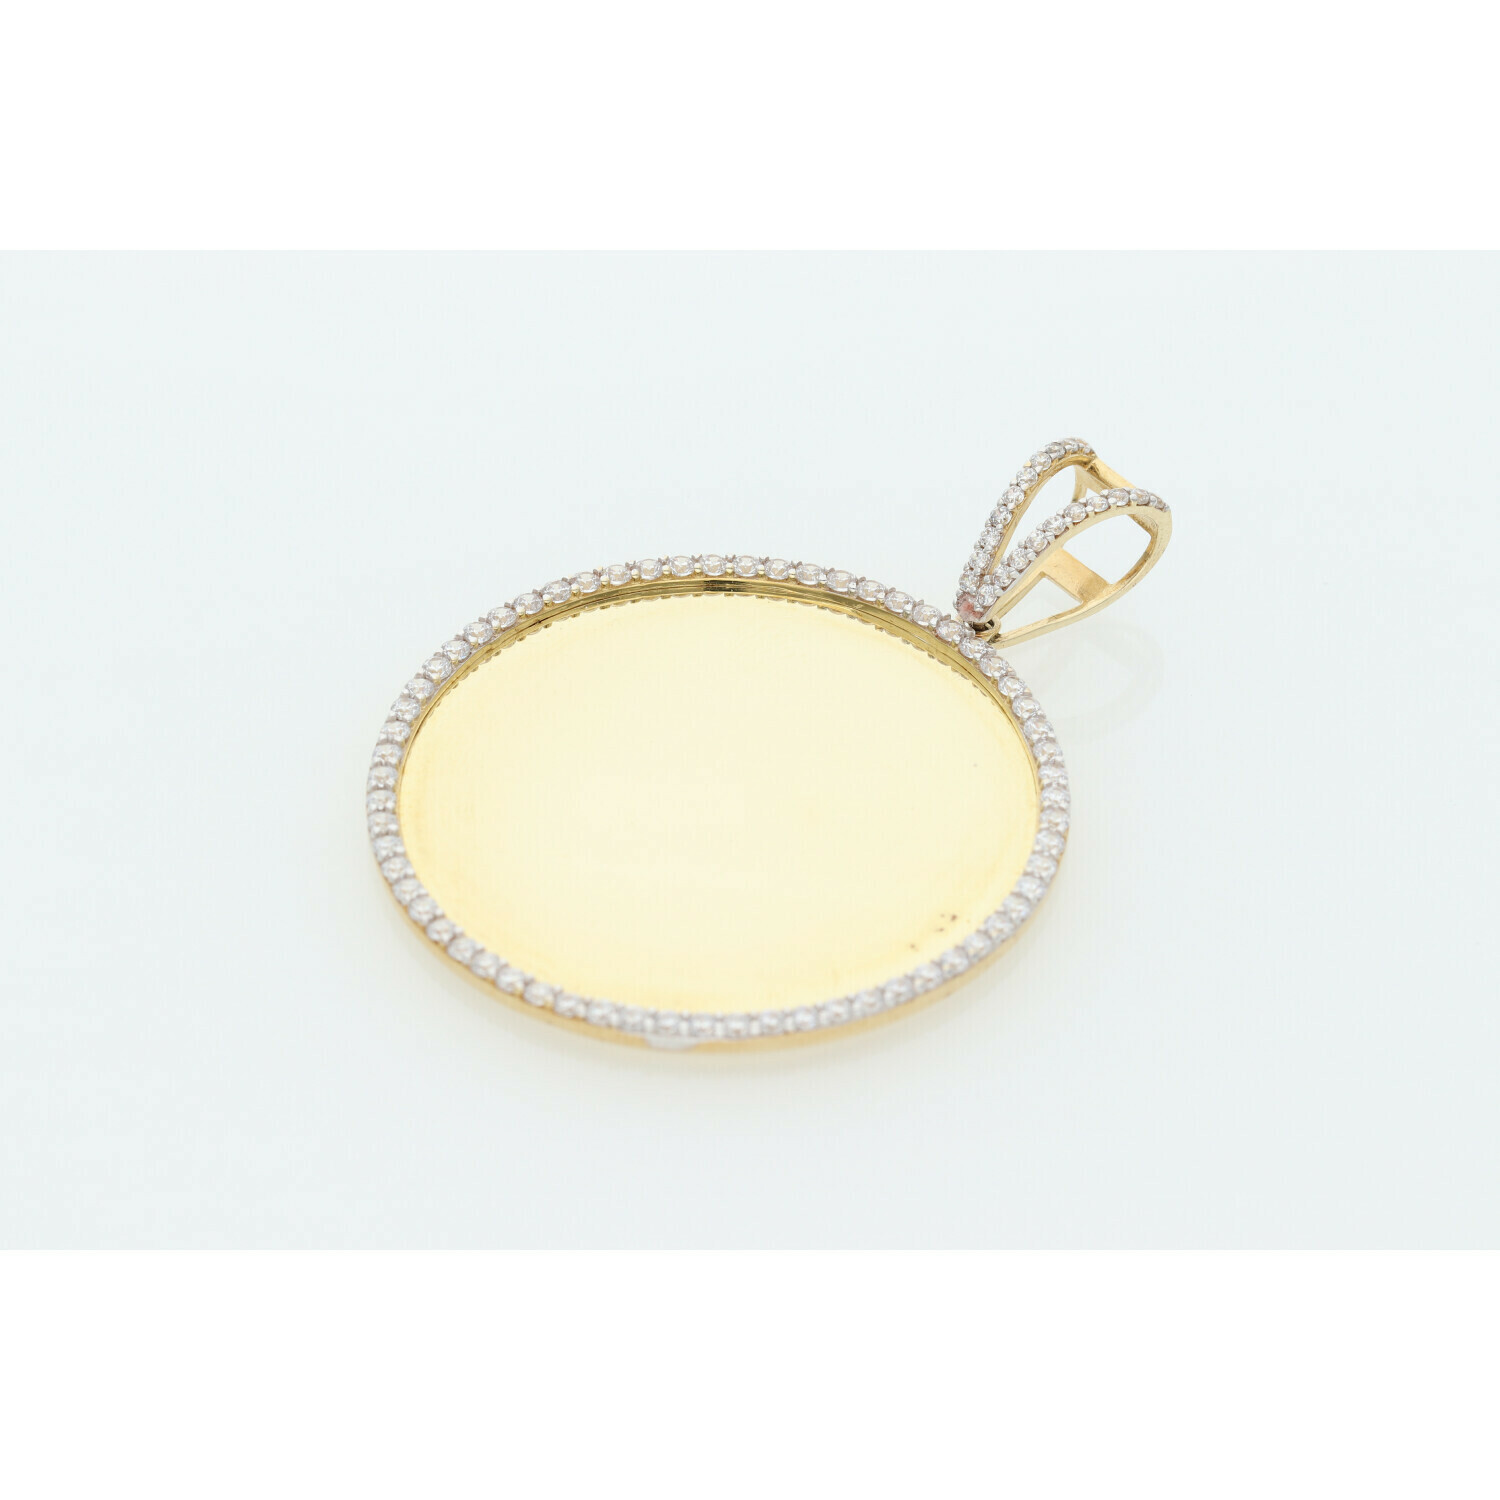 10 Karat Gold & Zirconium Photo Medal Charm